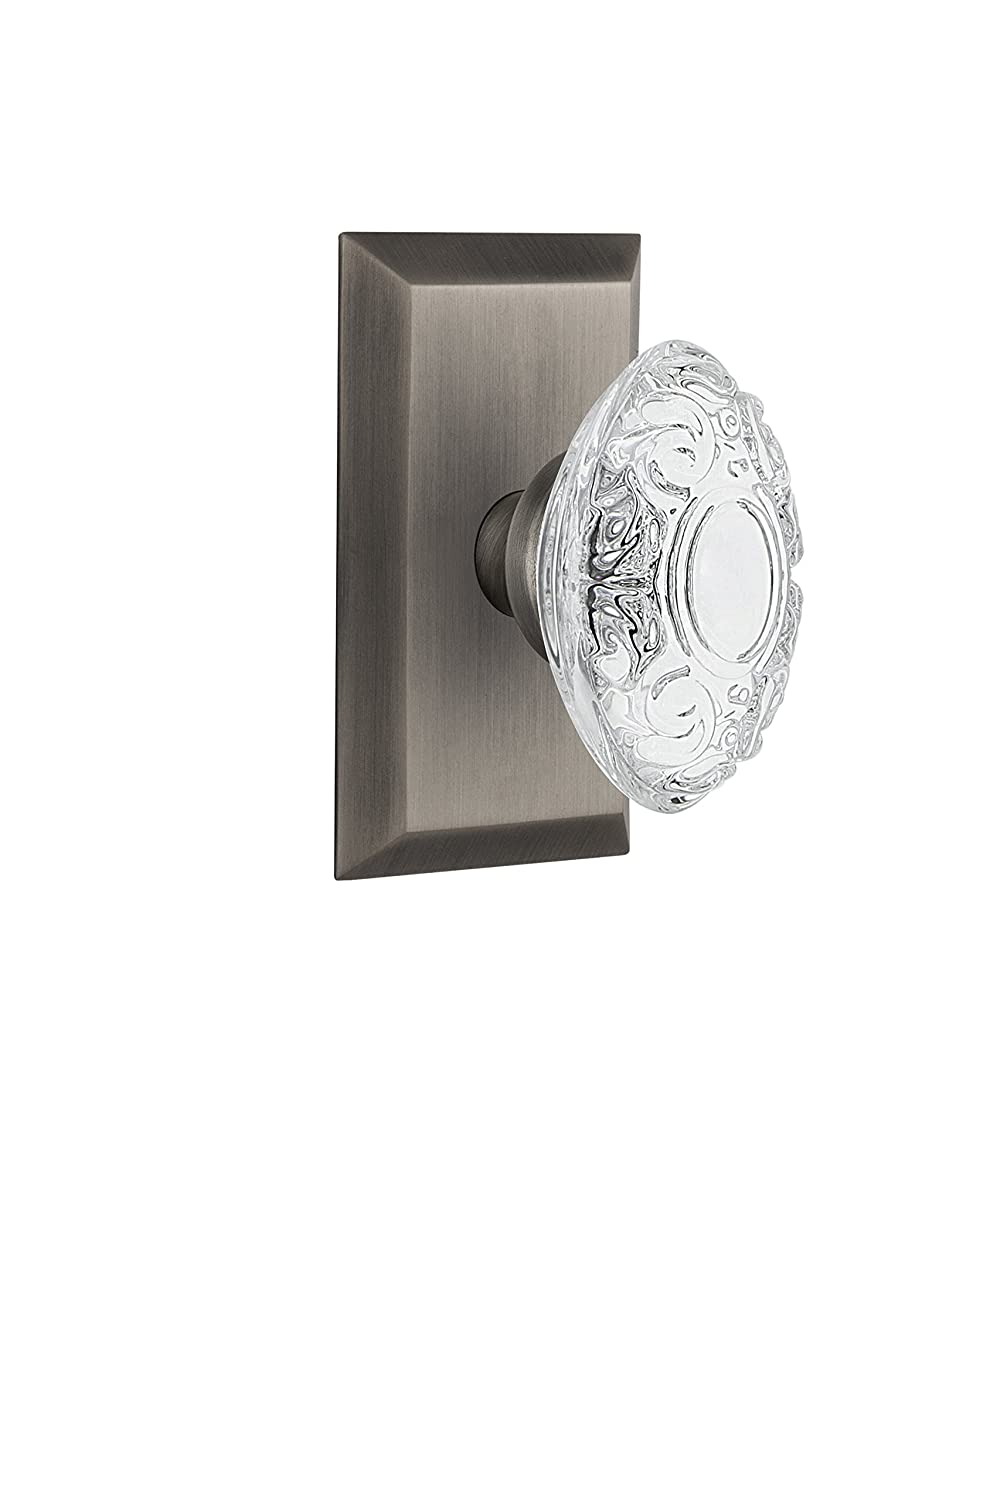 Nostalgic Warehouse 754114 Studio Plate with Crystal Victorian Privacy Door Knob 2.75 Antique Pewter